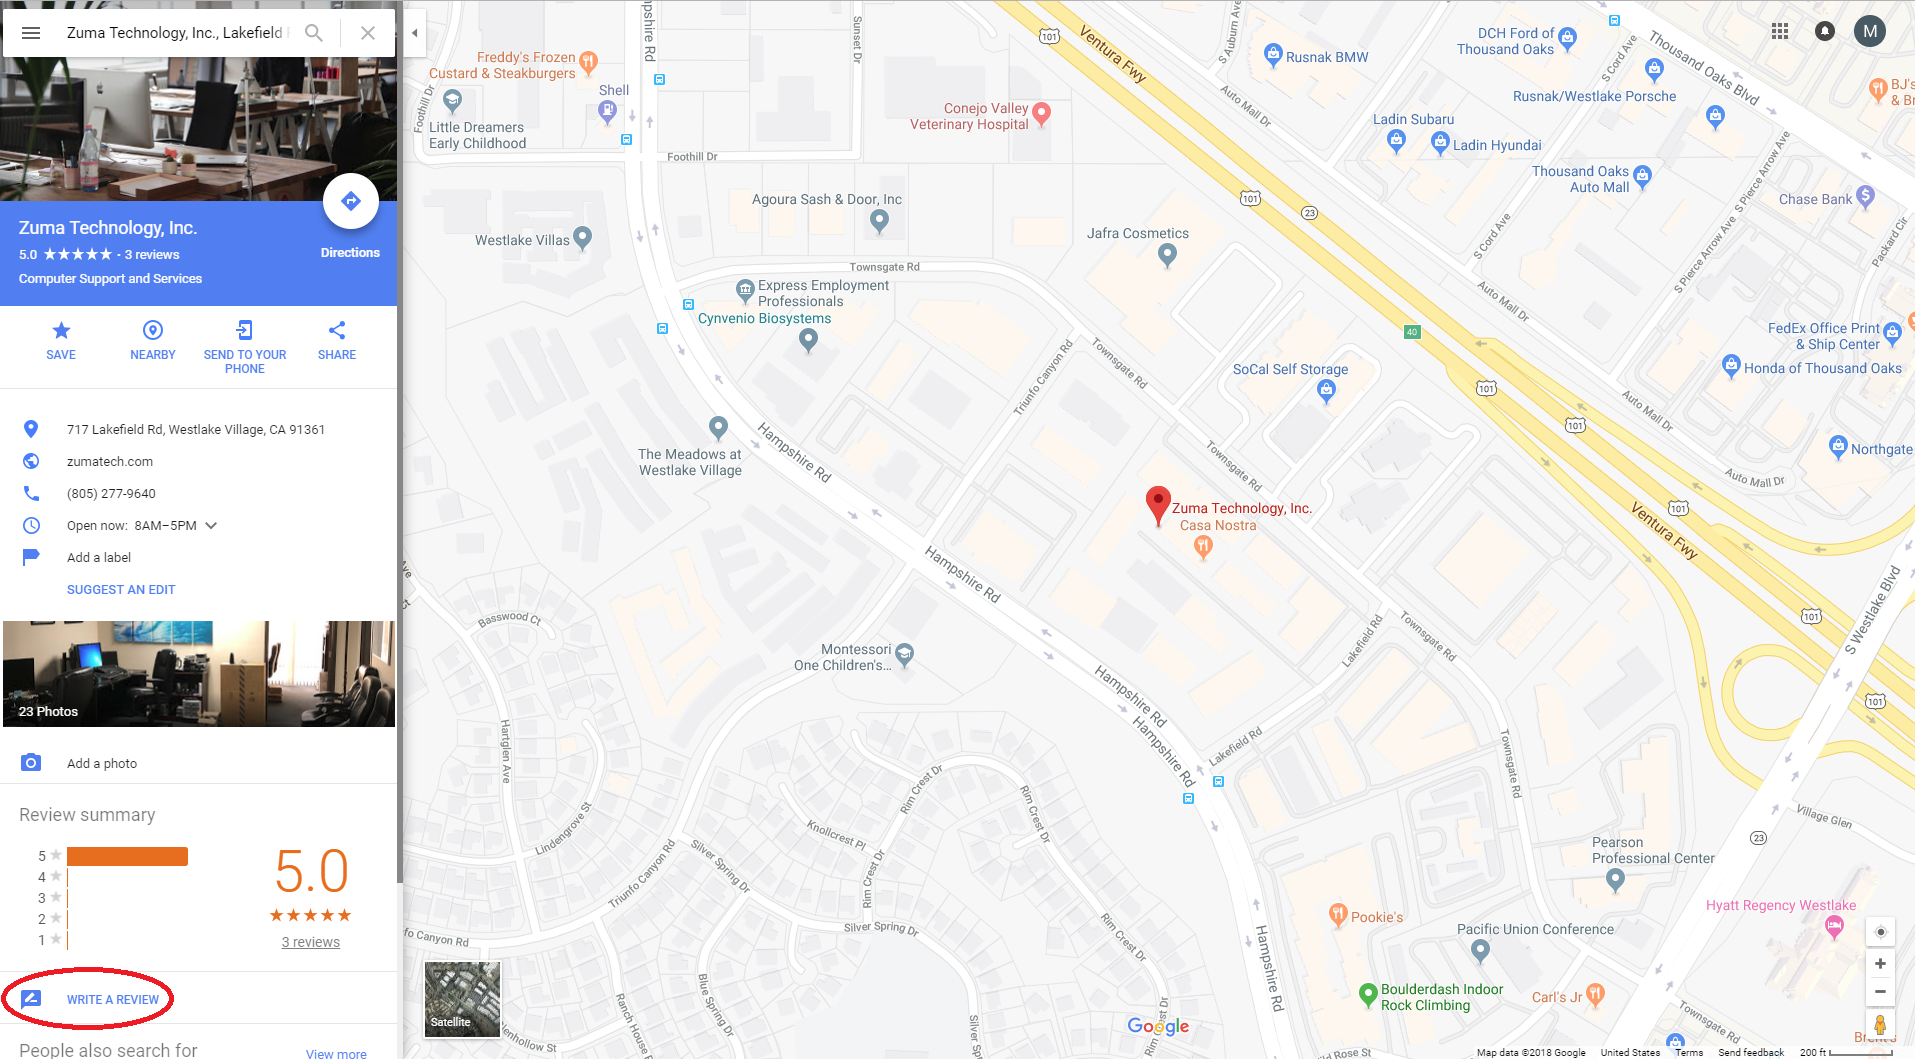 An image of the Google Maps page after searching for a business